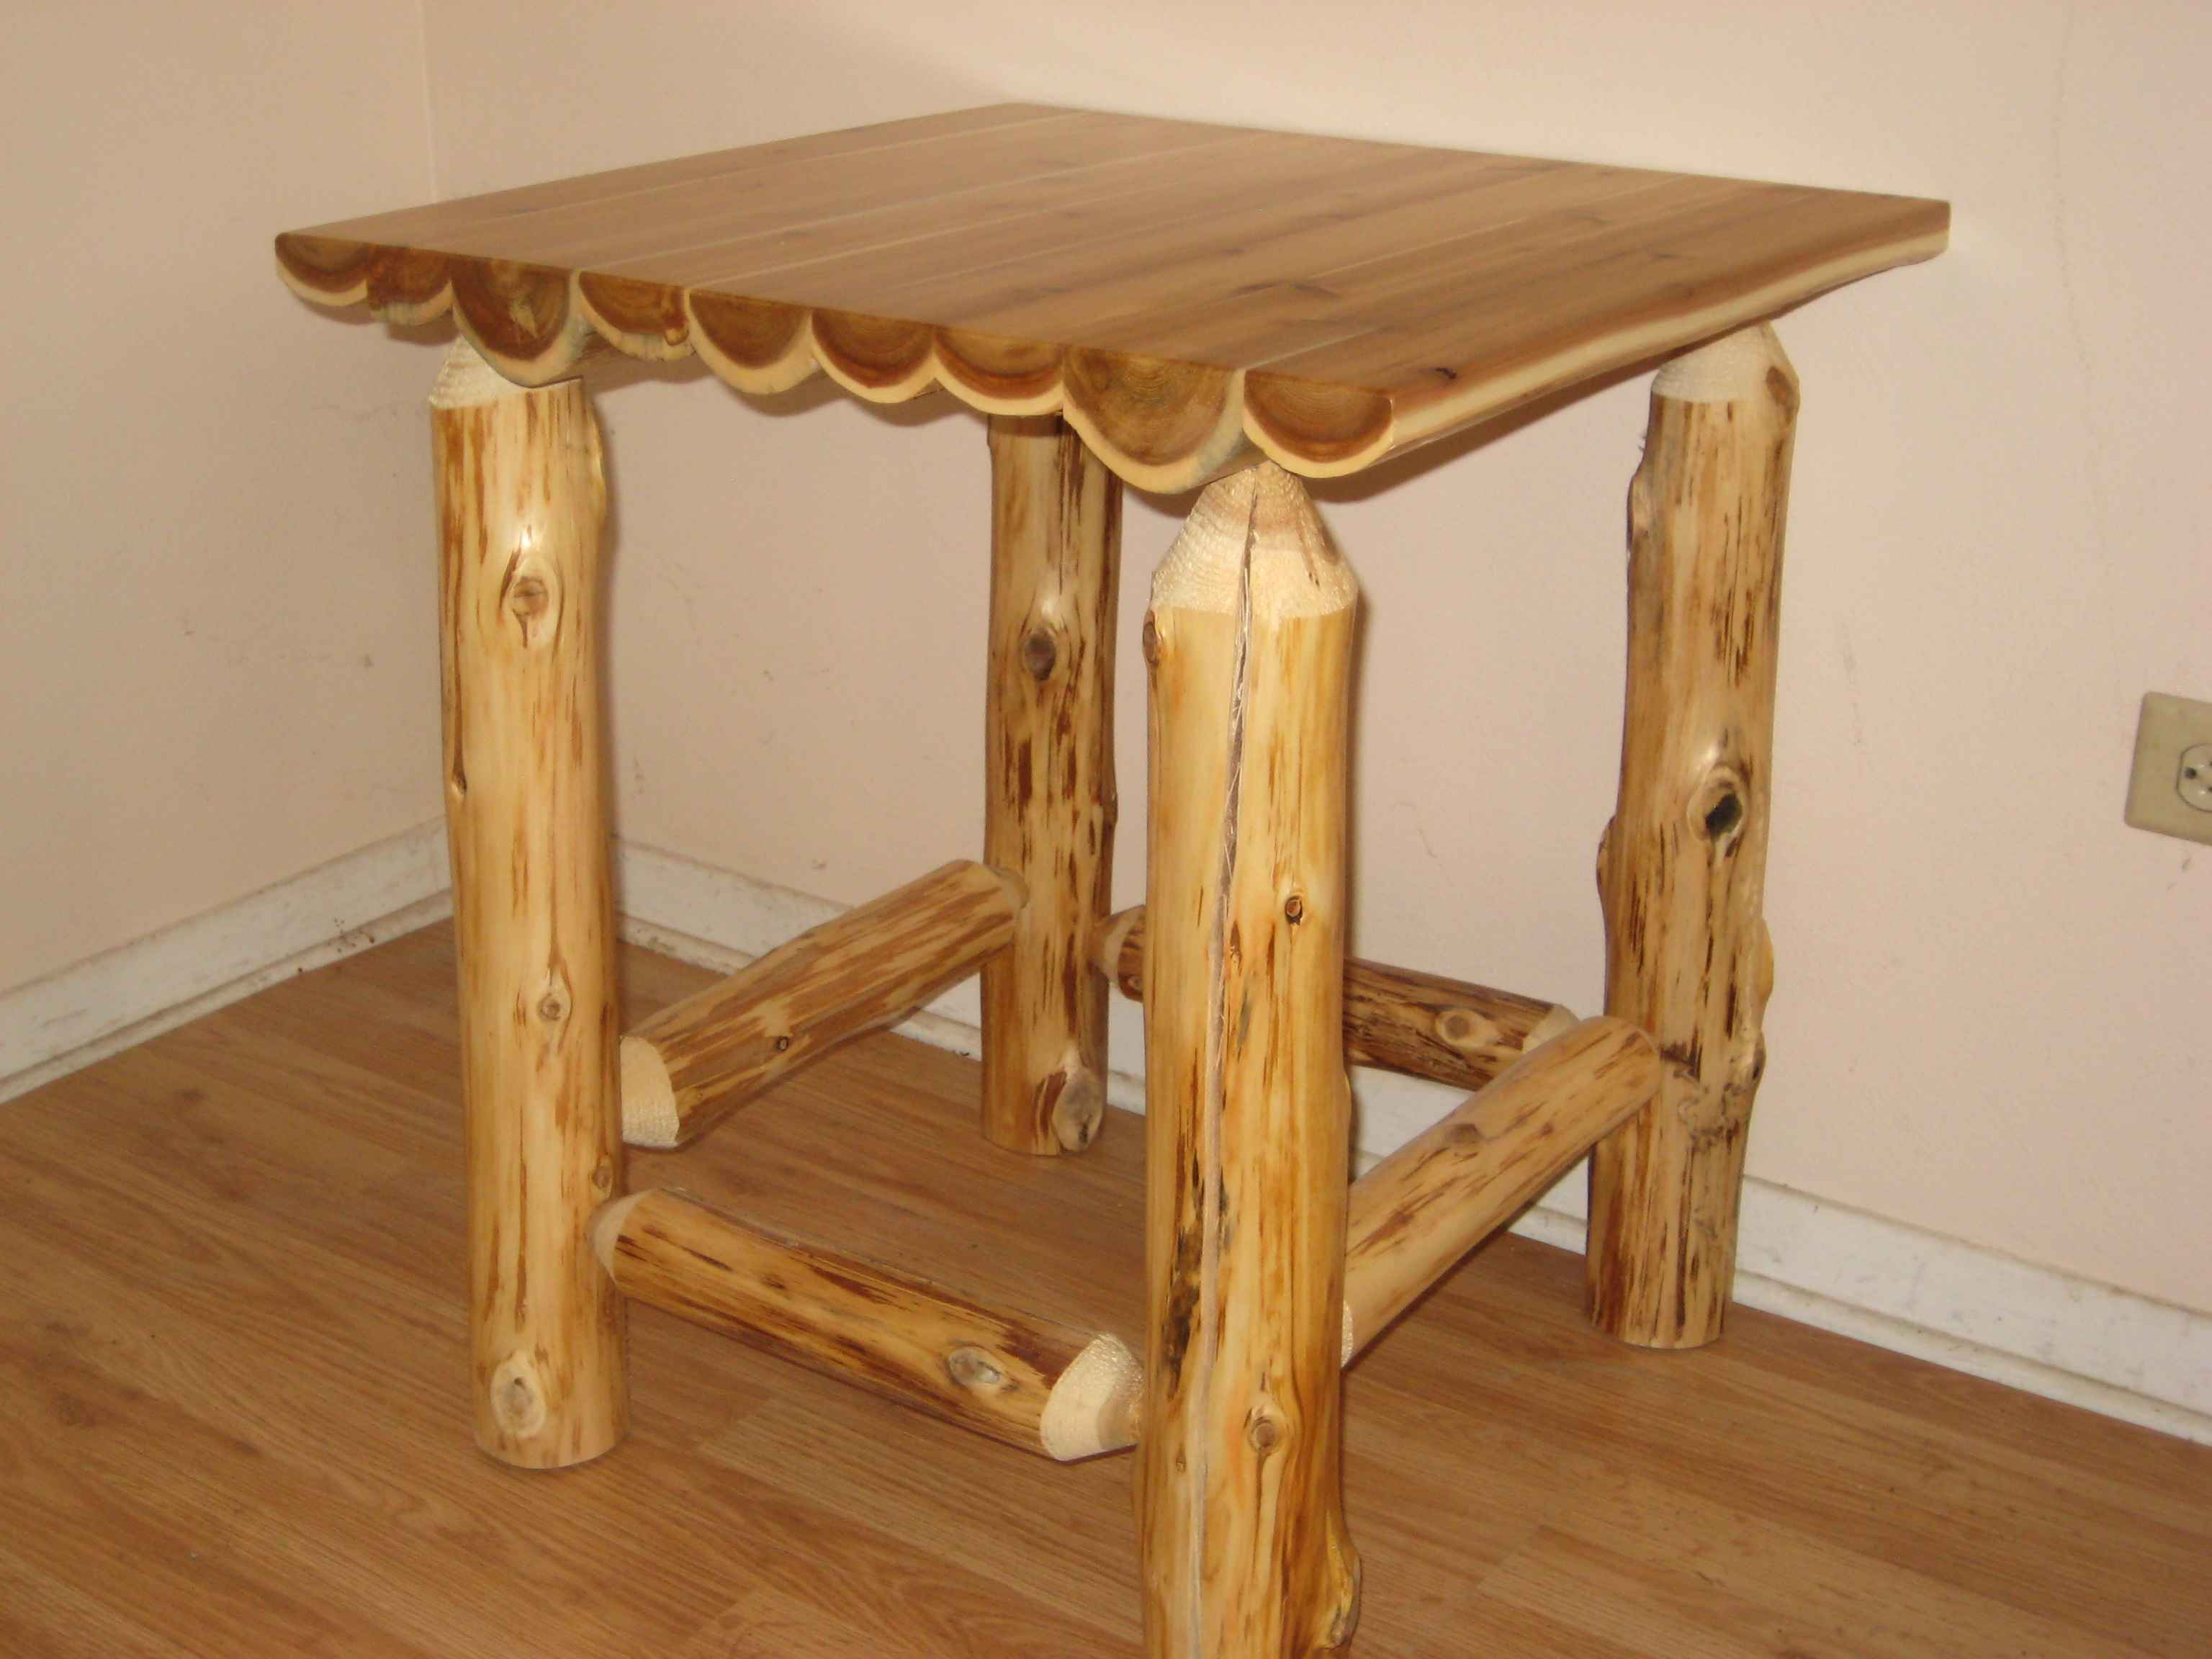 New Log End Table